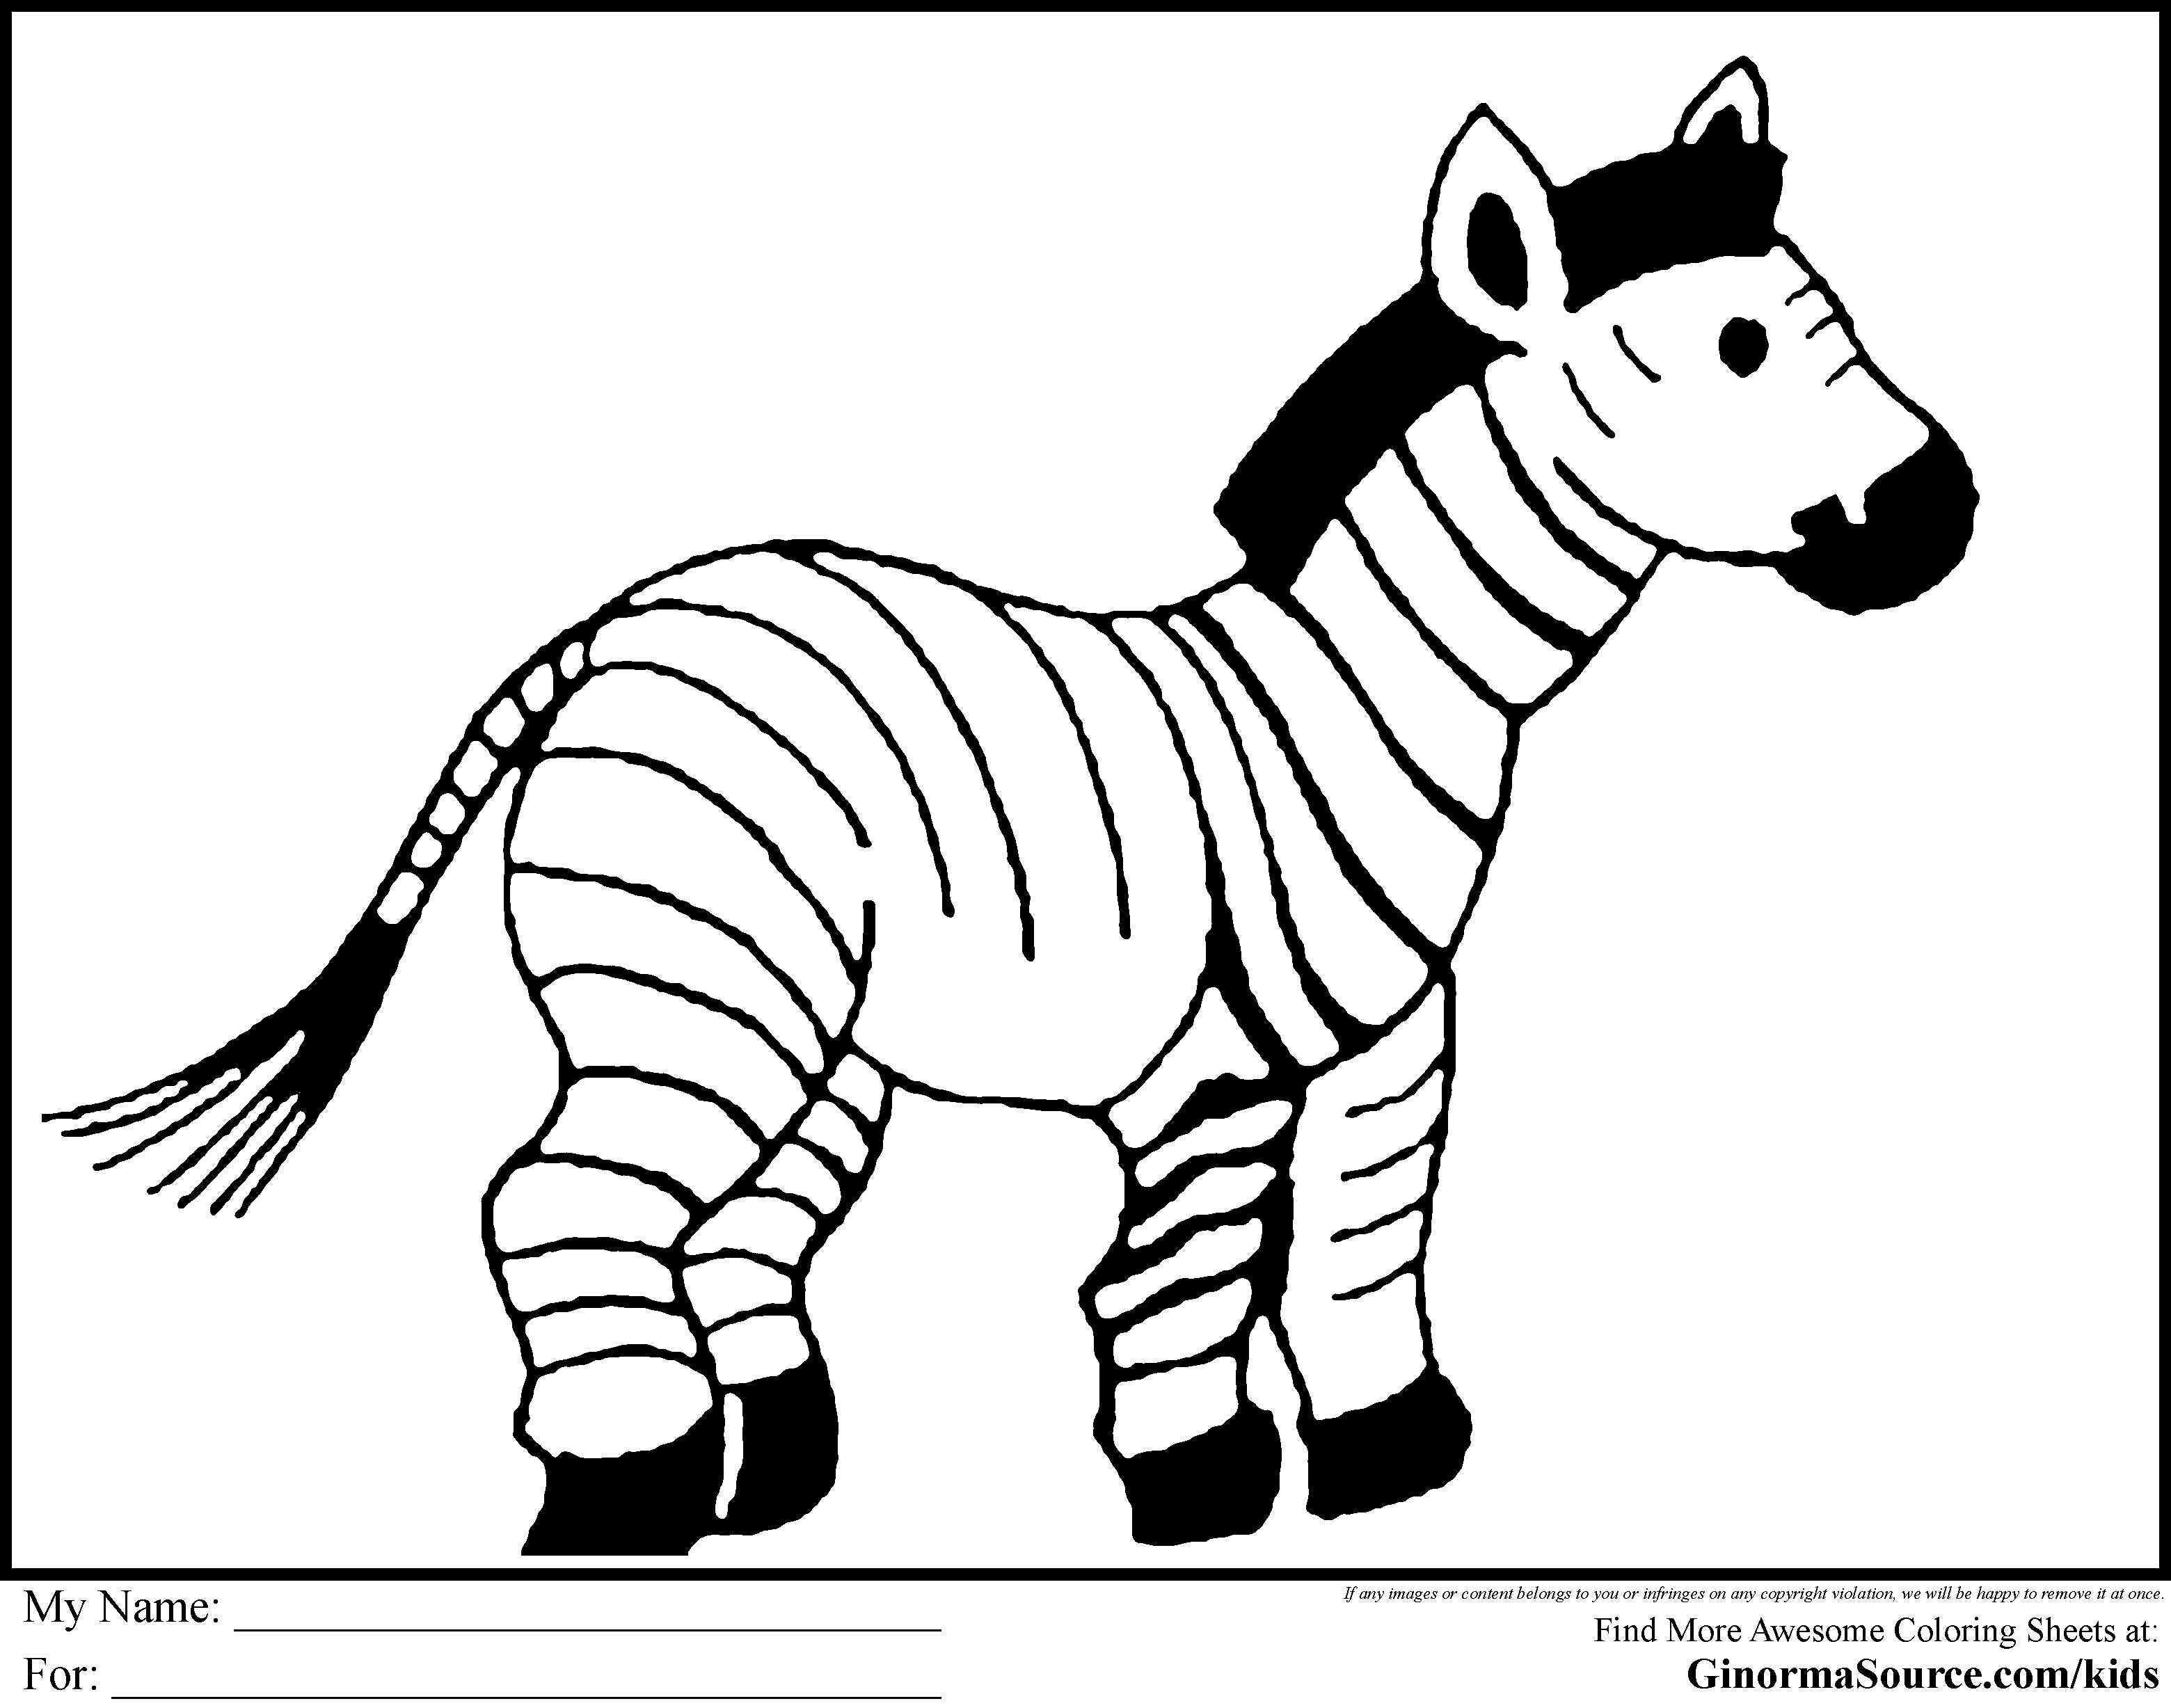 Coloring: Cute Zoo Animal Coloring Pages